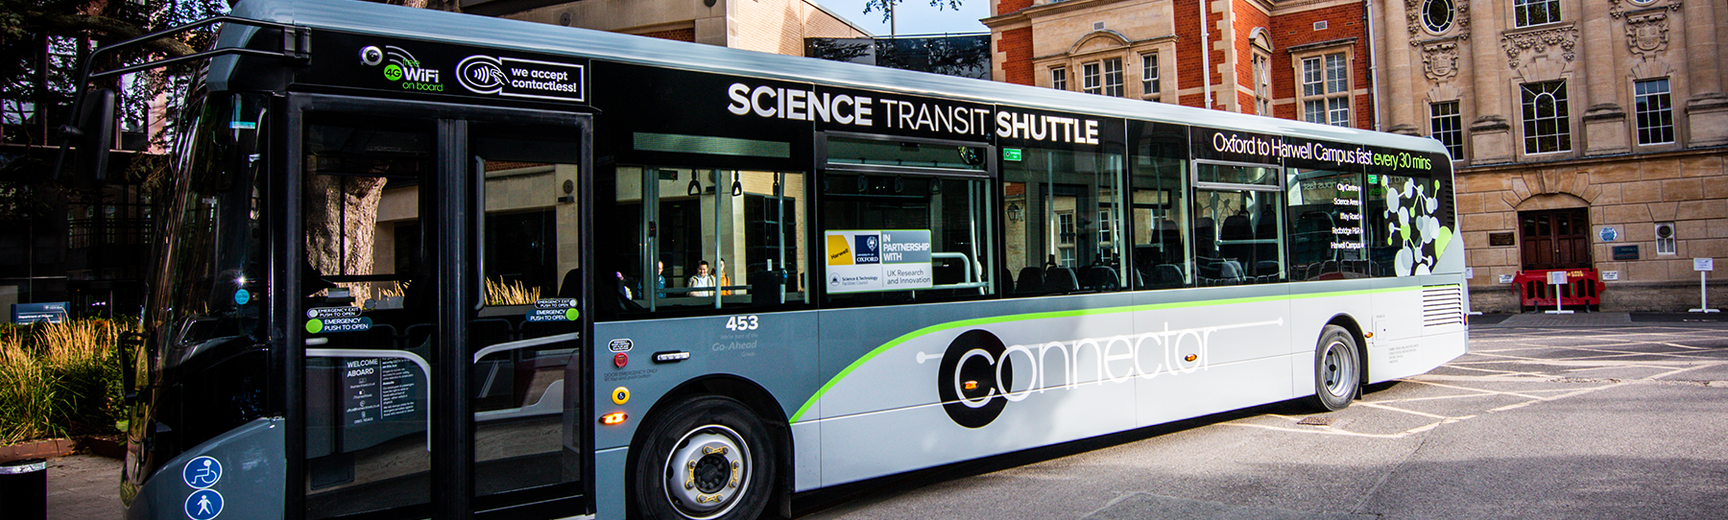 Image of science transit shuttle